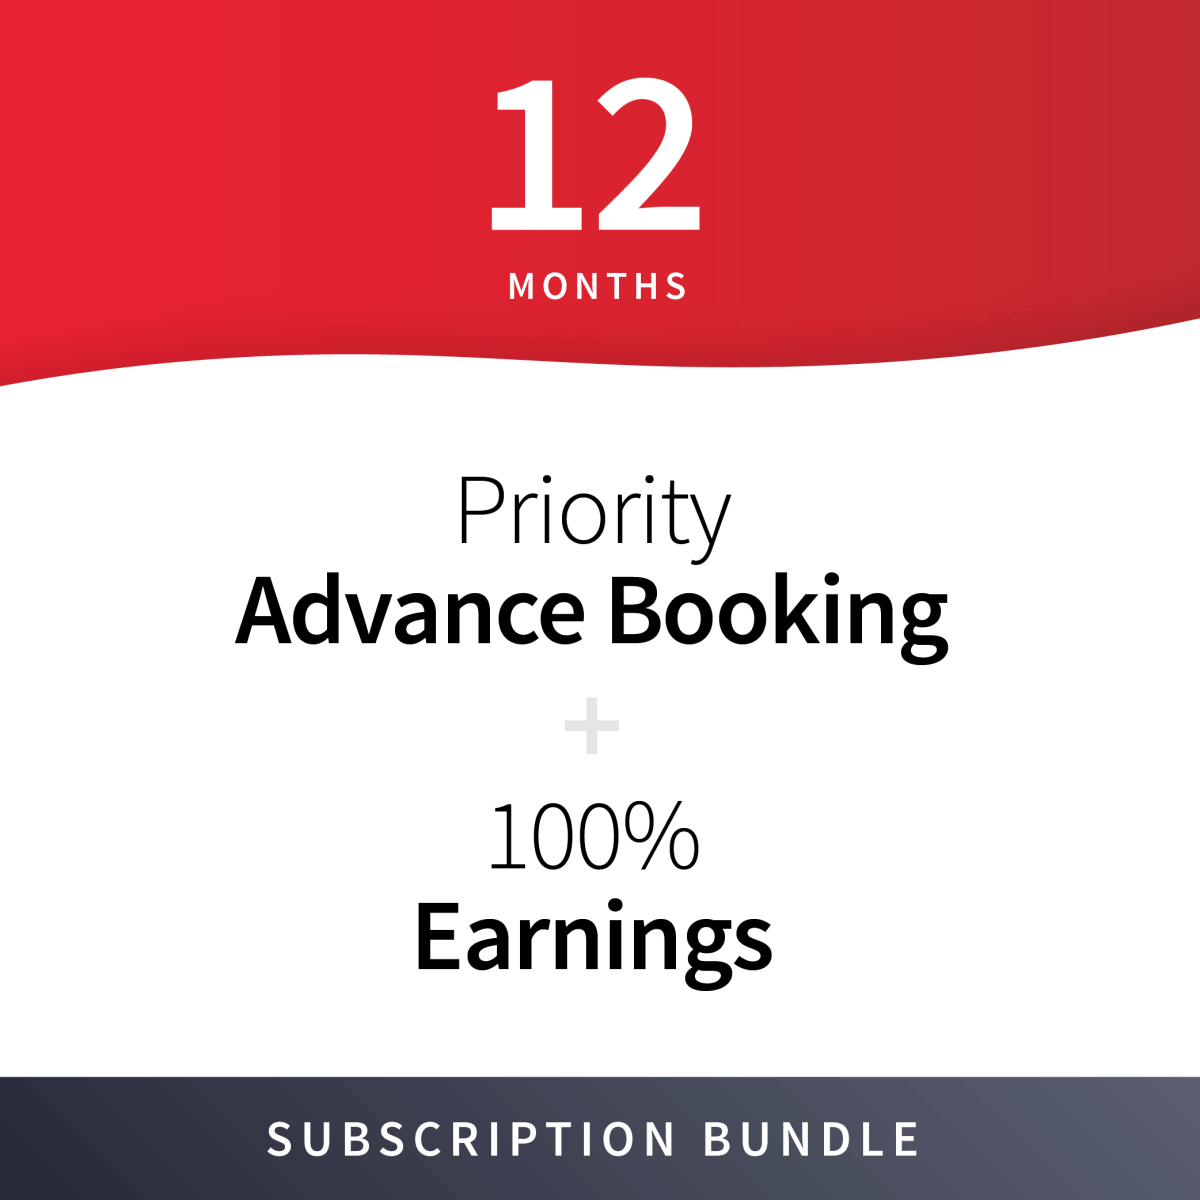 100% Earnings + Priority Advance Booking Subscription Bundle - 12 Months 15